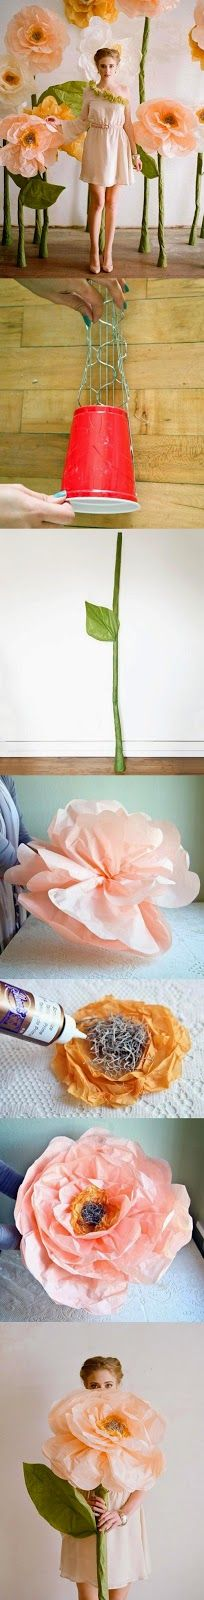 Giant Tissue Flower